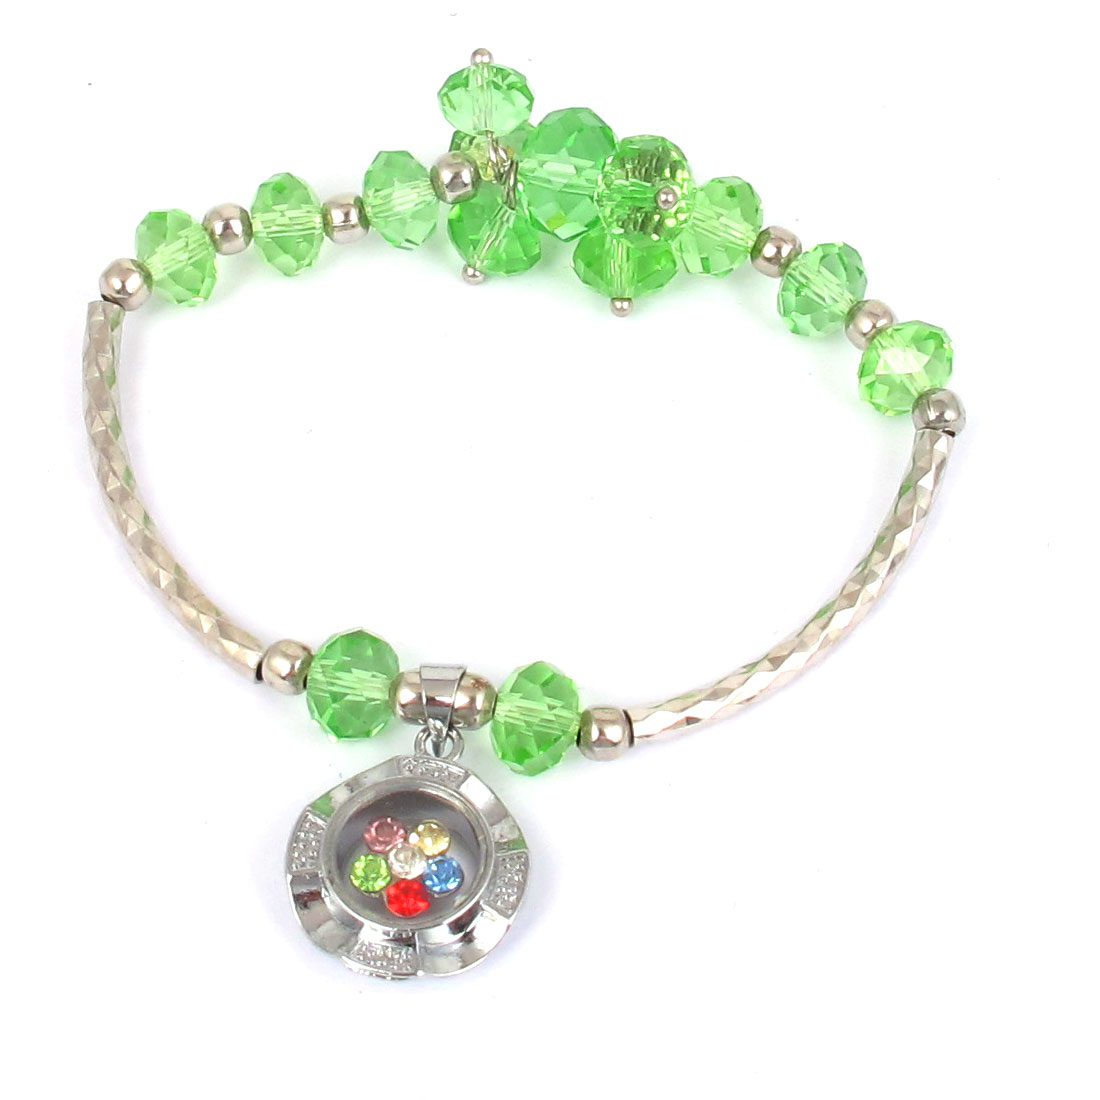 Plastic Faux Faceted Crystal Beads Lucky Pendant Elastic Wrist Ornament Bangle Bracelet Green